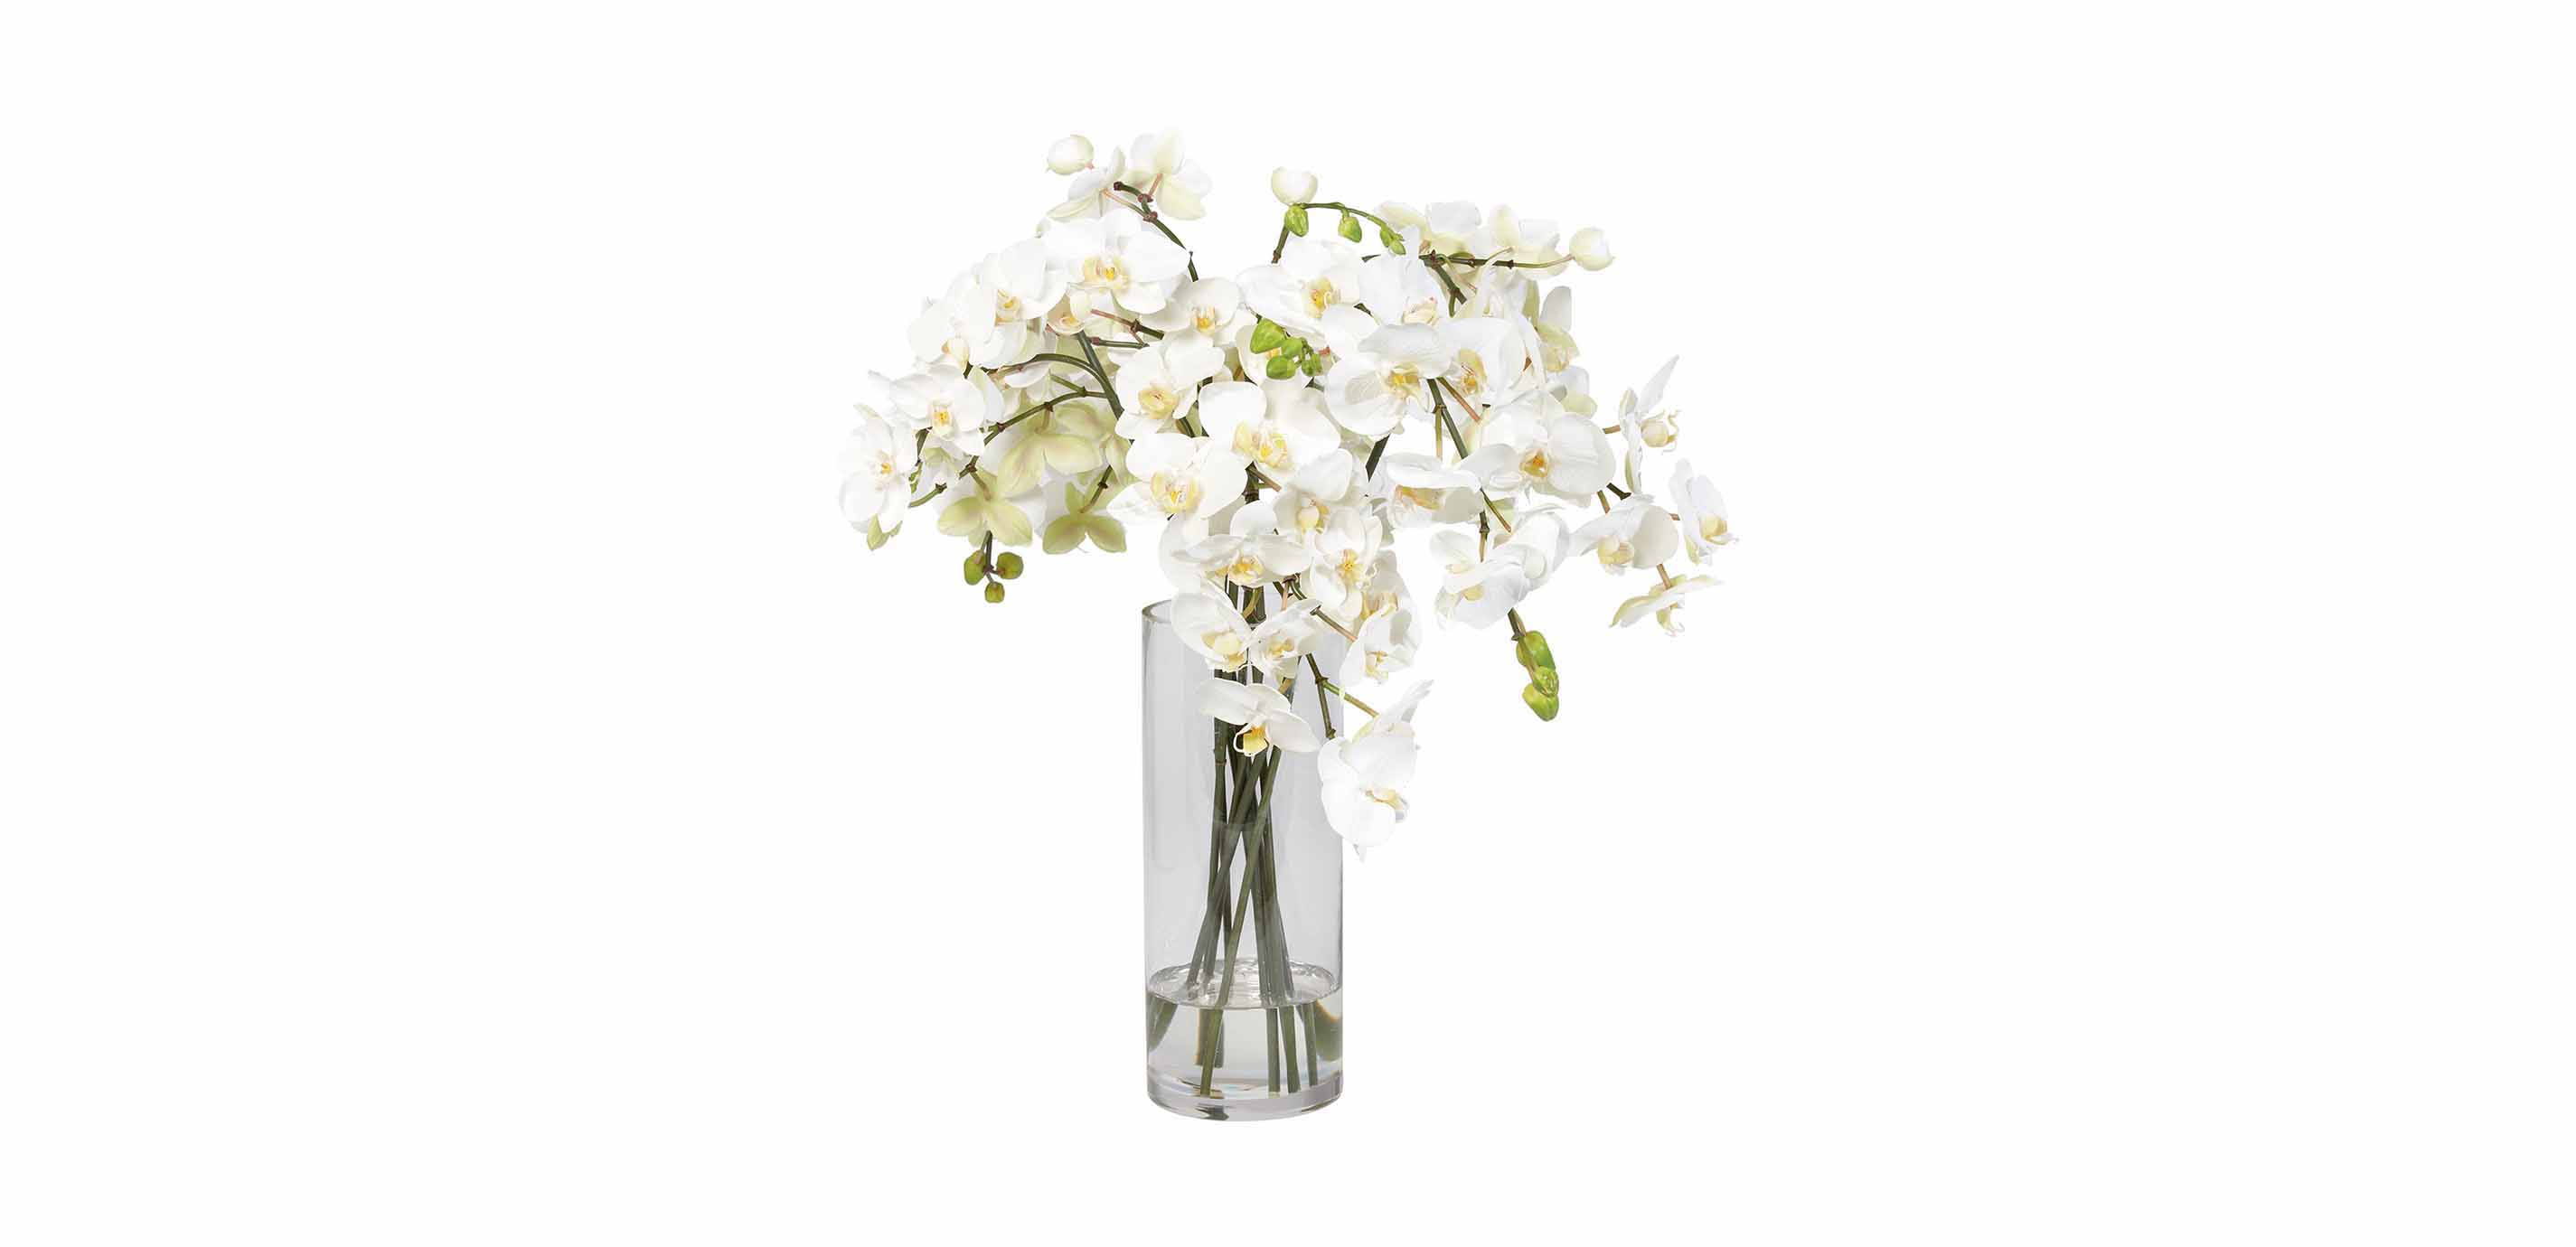 White orchids in glass vase florals trees images white orchids in glass vase largegray reviewsmspy